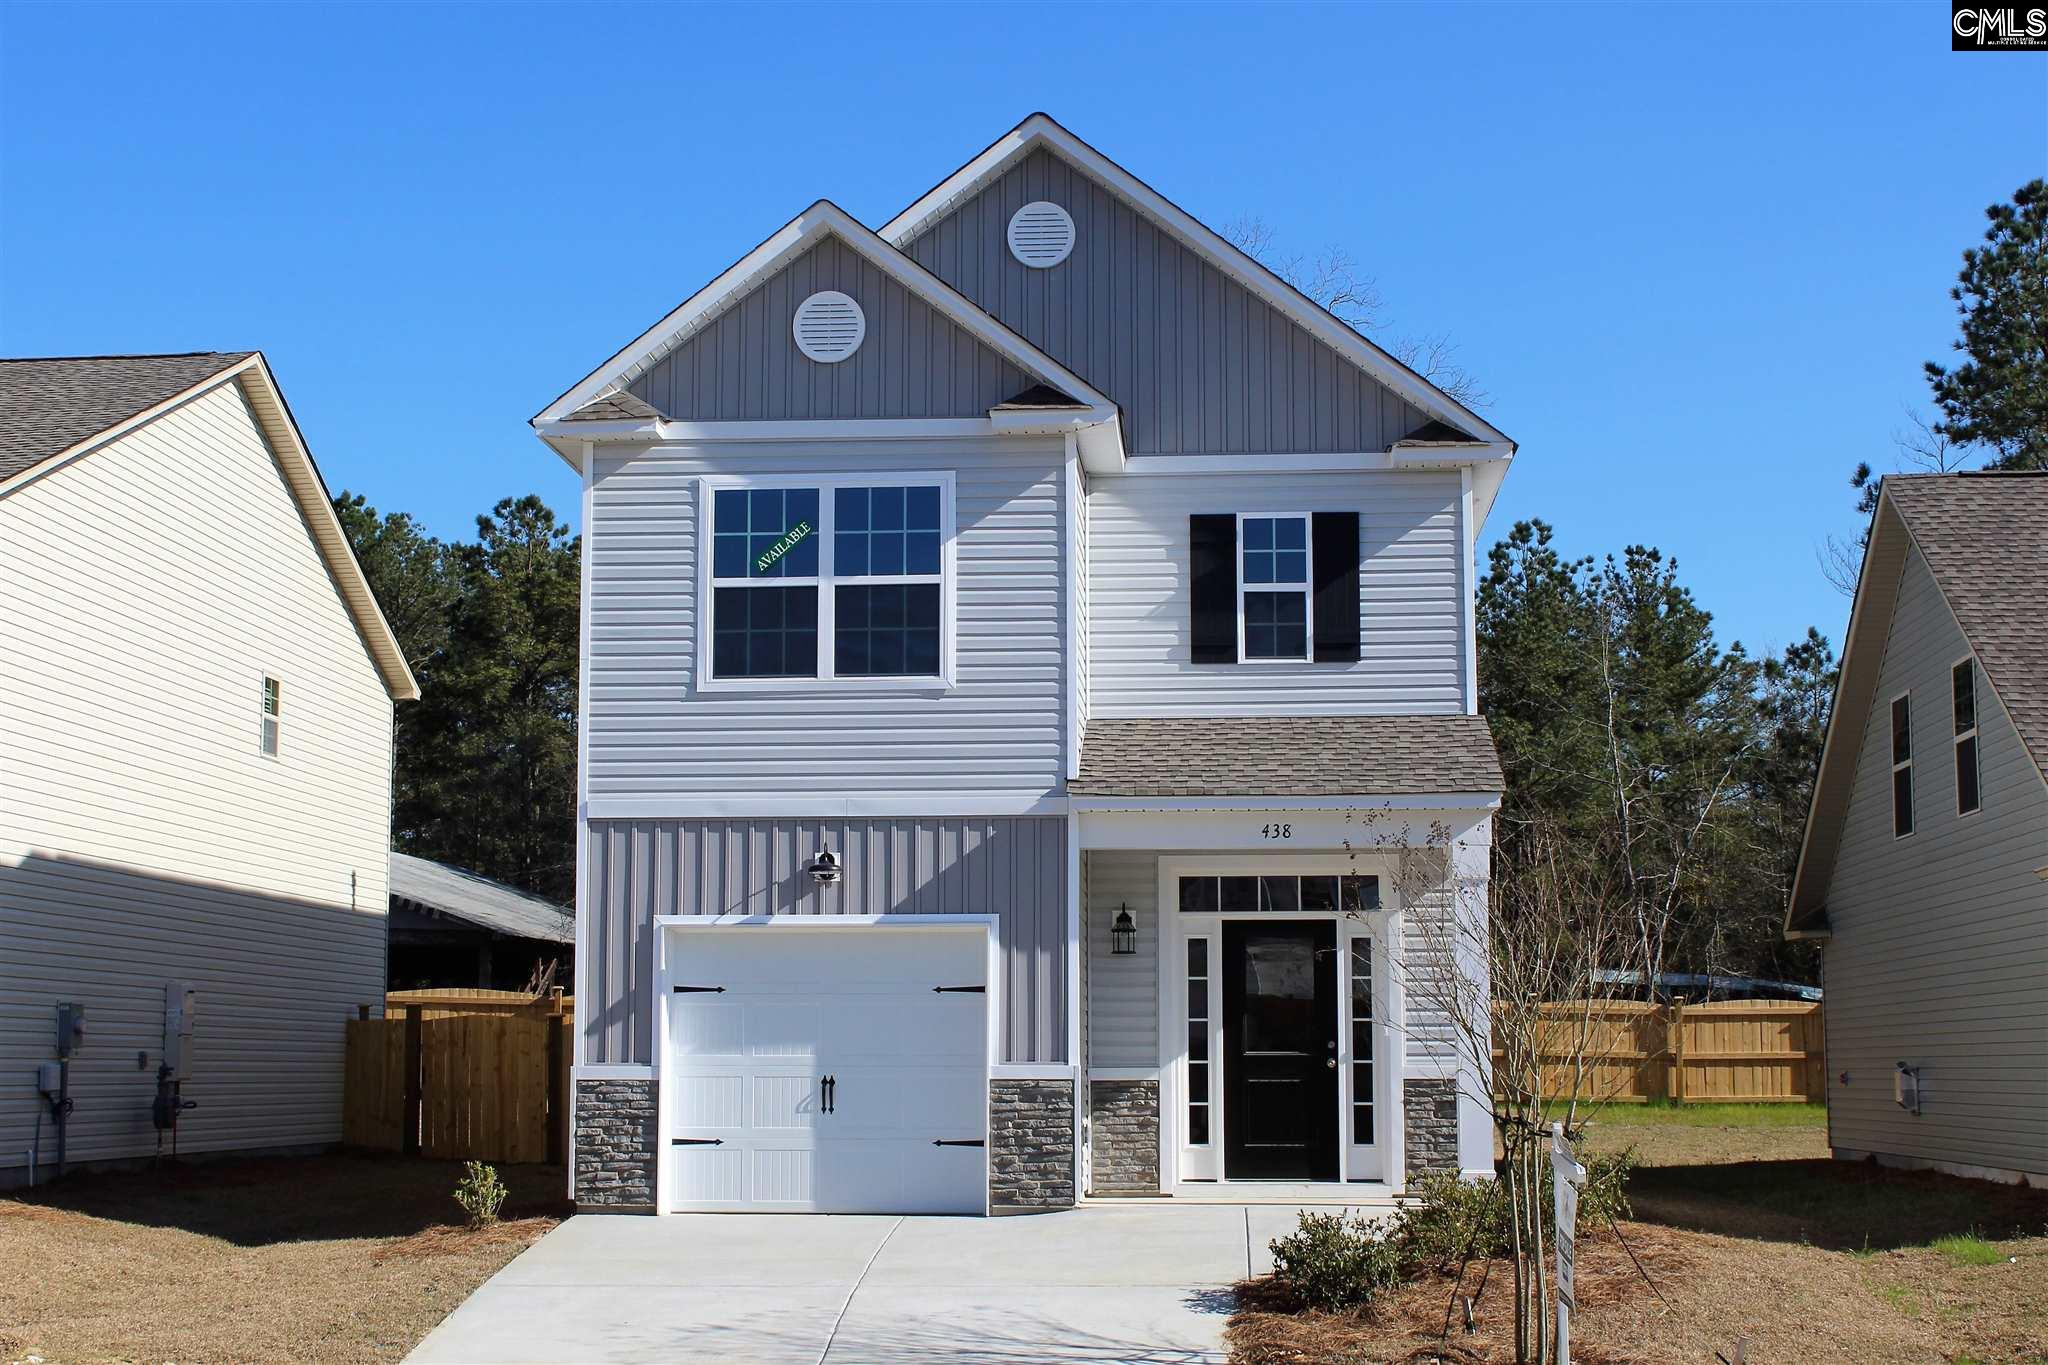 438 Fairford Blythewood, SC 29016